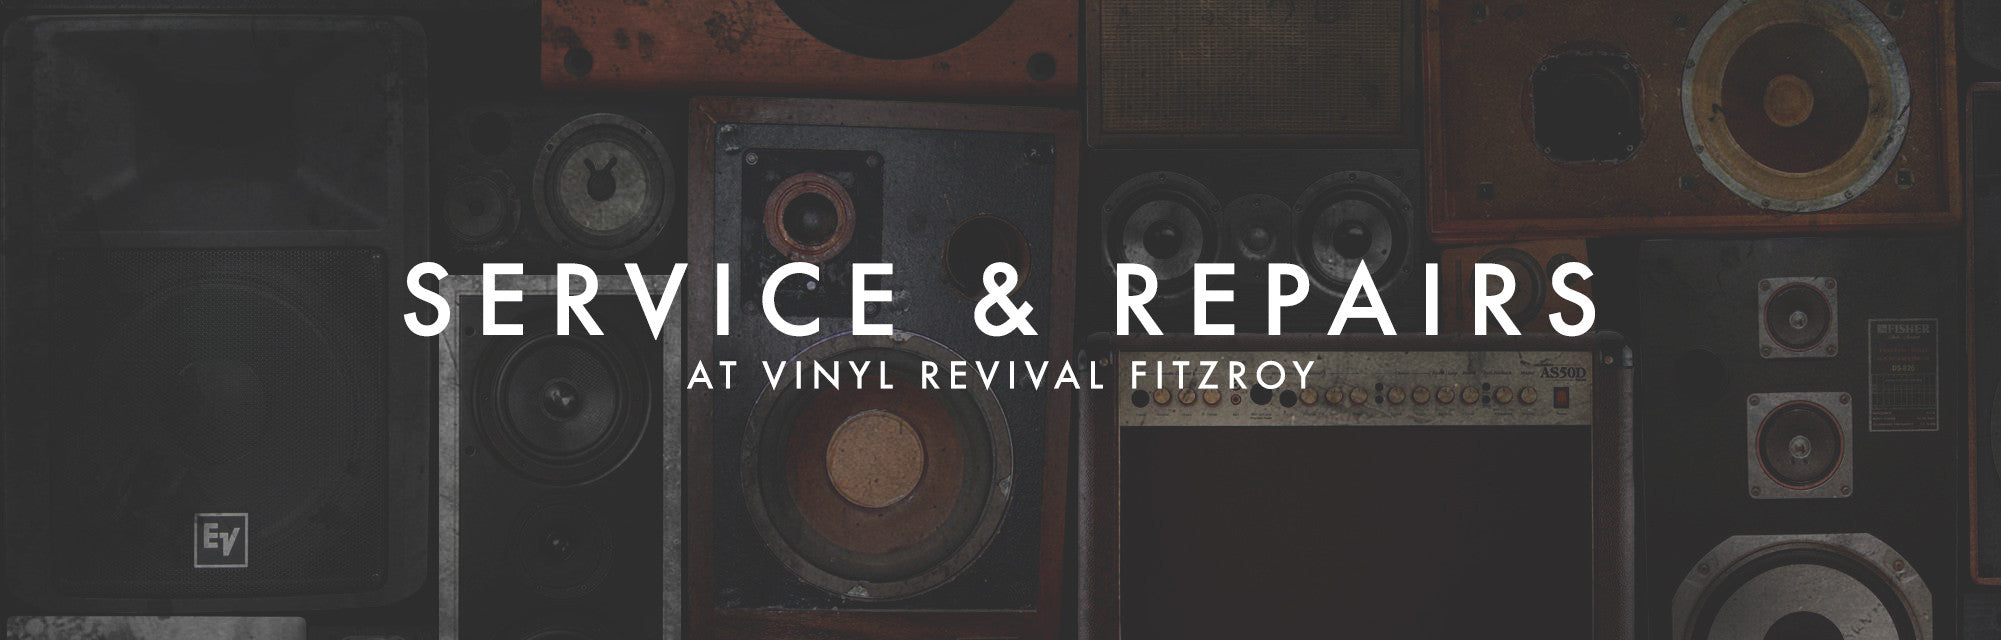 turntable service and repairs Vinyl Revival